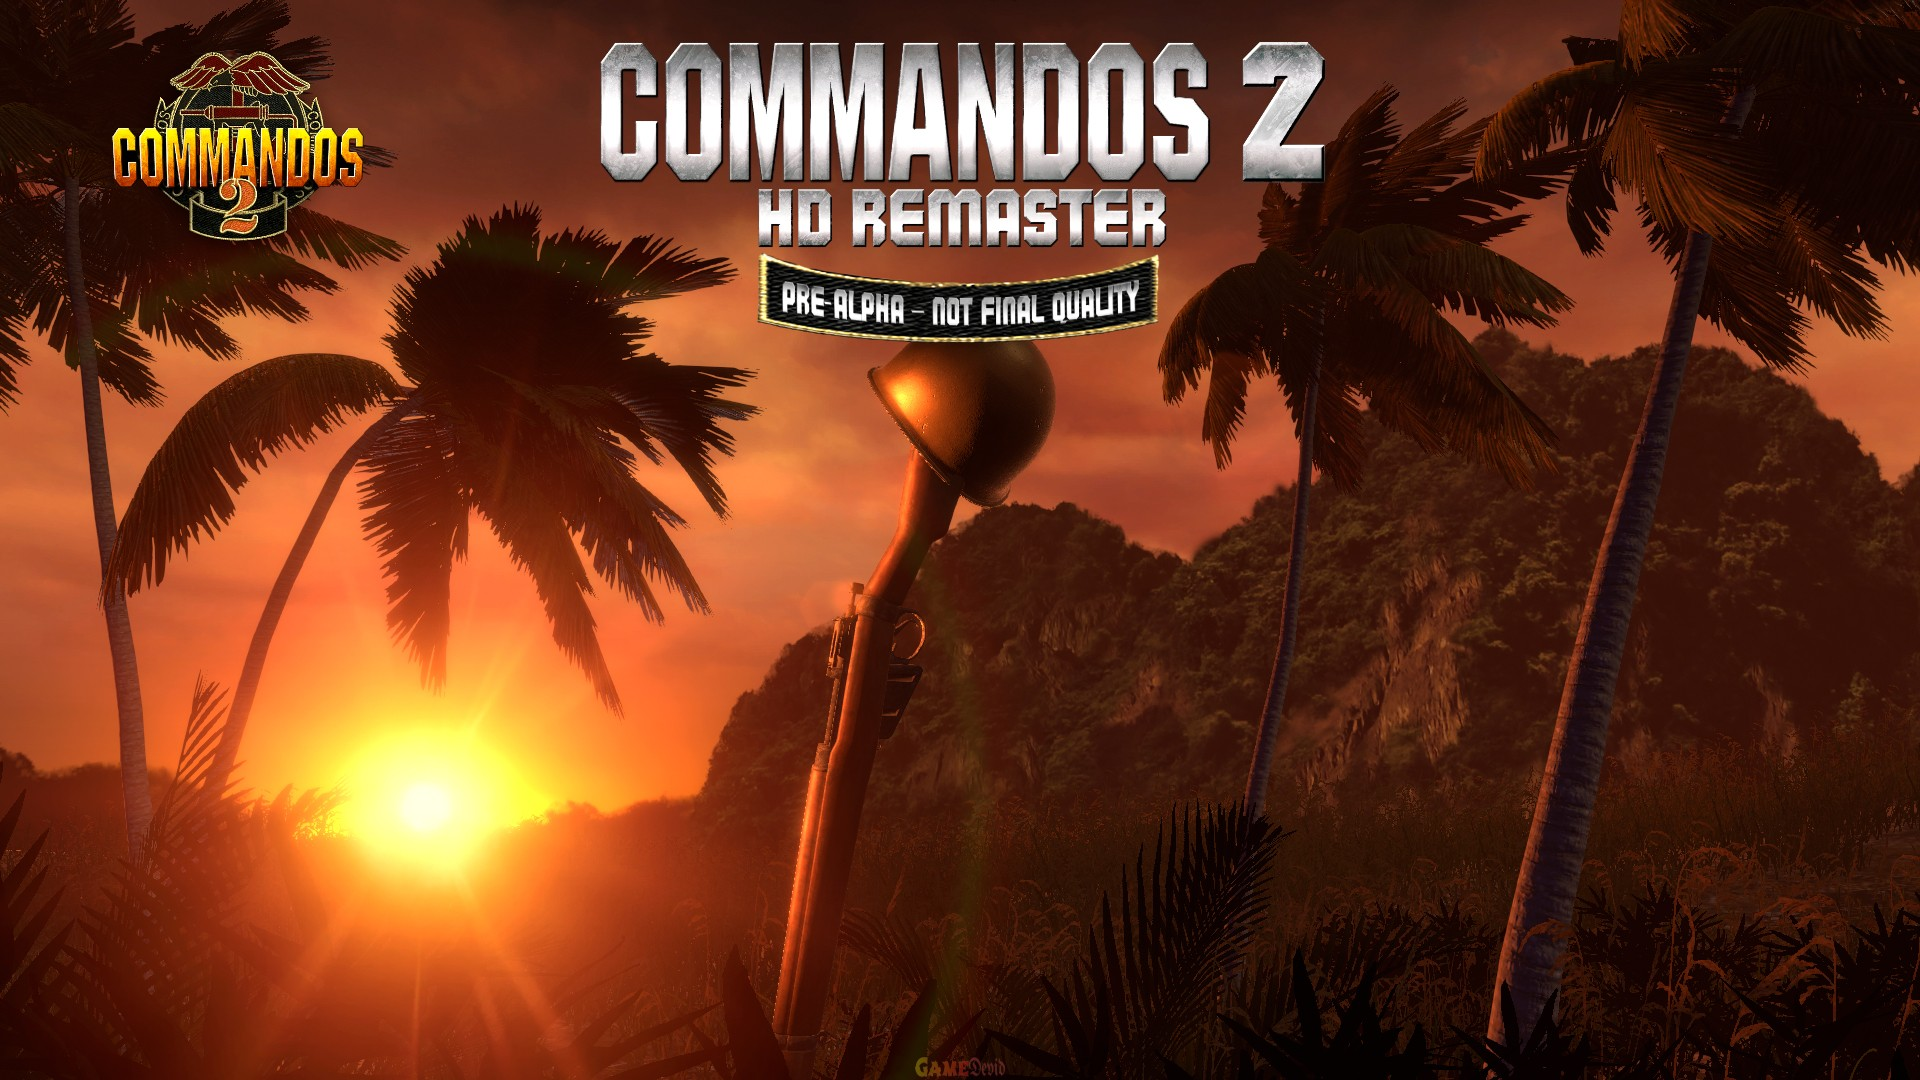 Commandos 2 HD Remaster PC Game Cracked Version Download